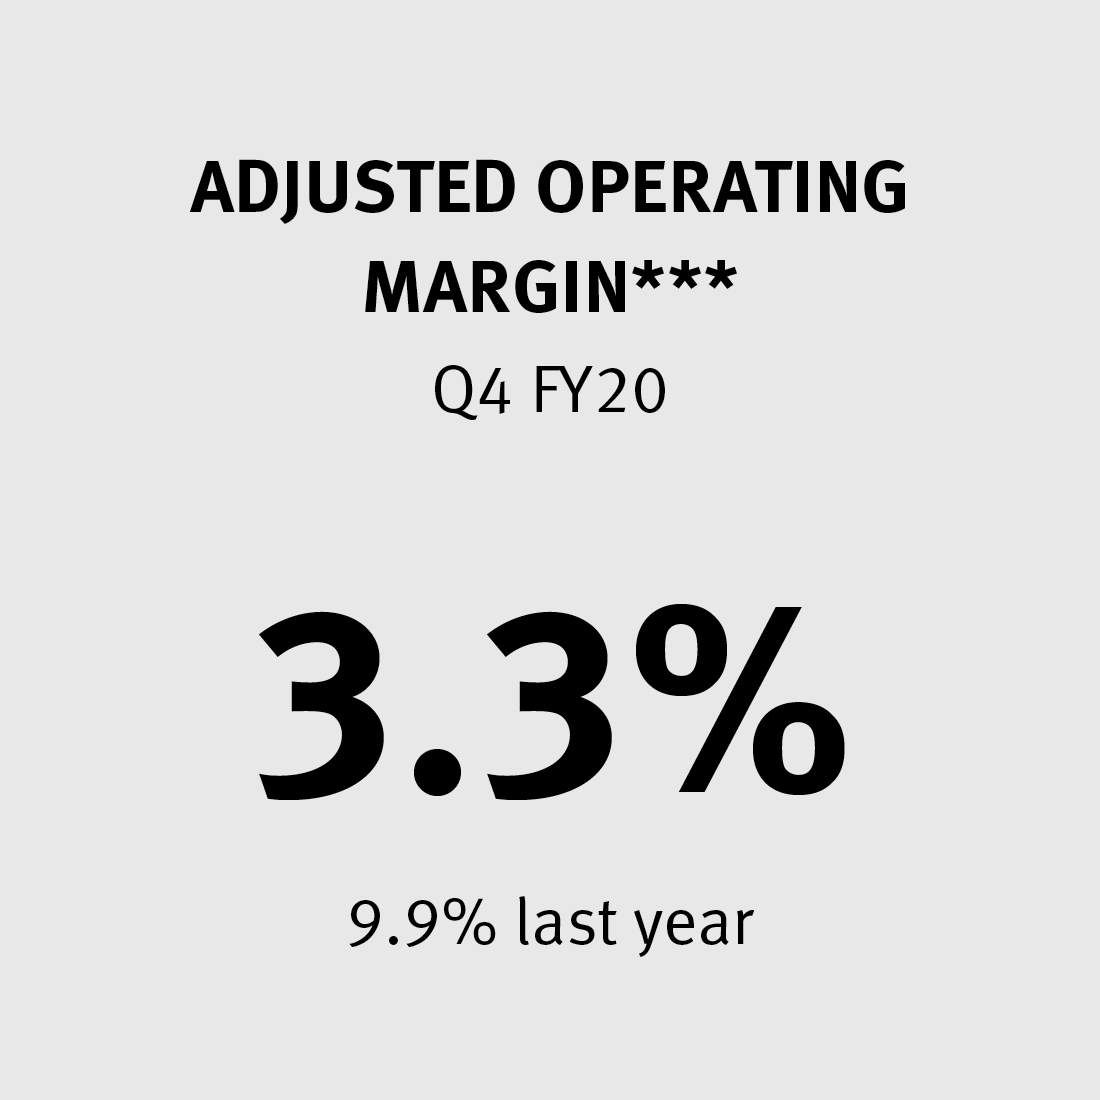 Adjusted Operating Margin 3.3% (9.9% last year)***